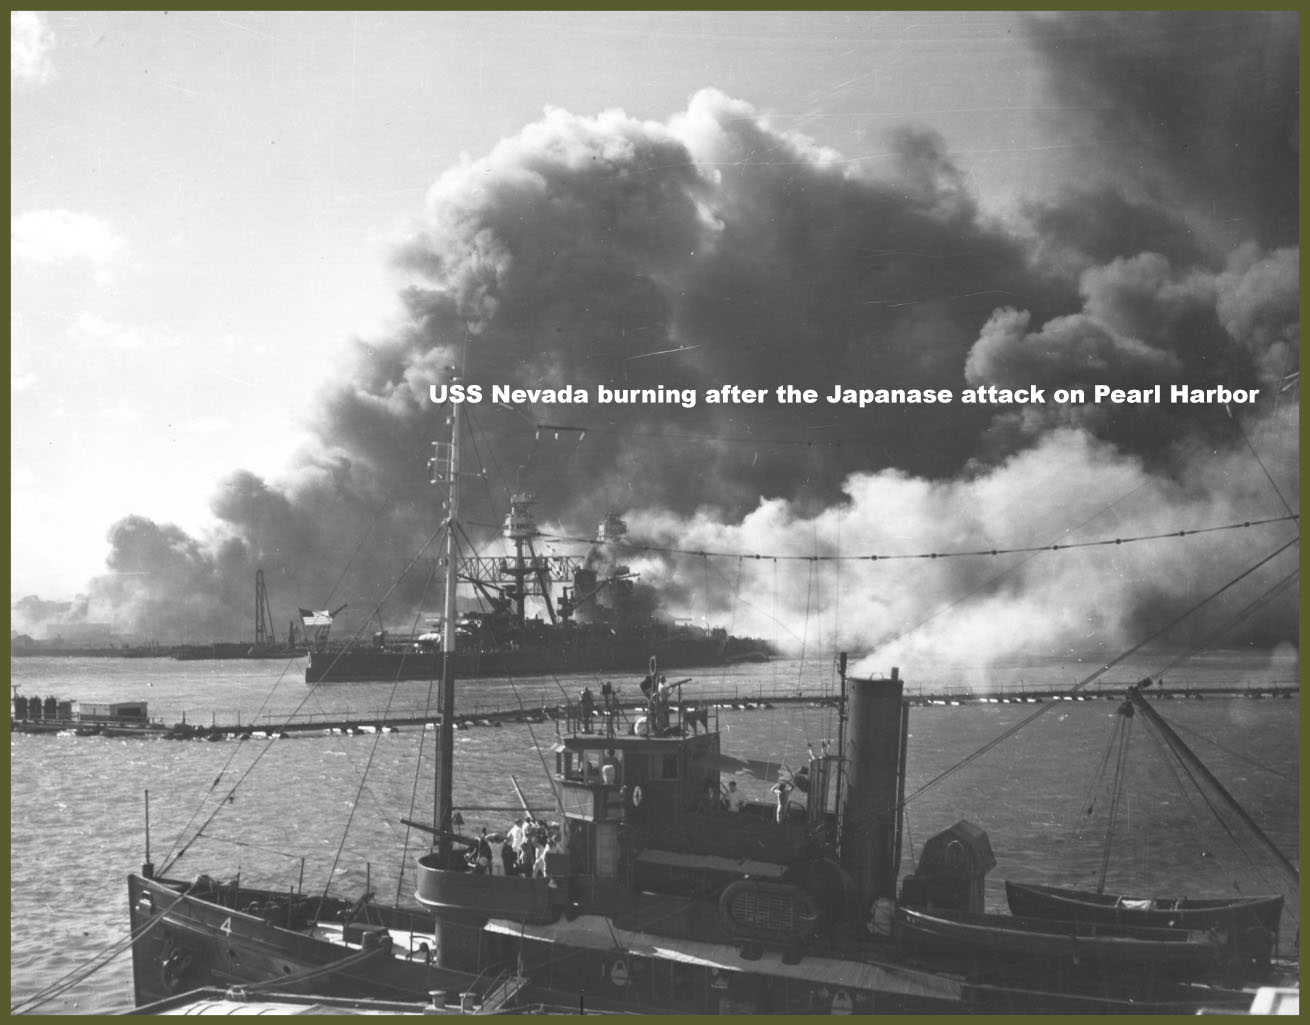 USS Nevada after the Japanese Attack on Pearl Harbor